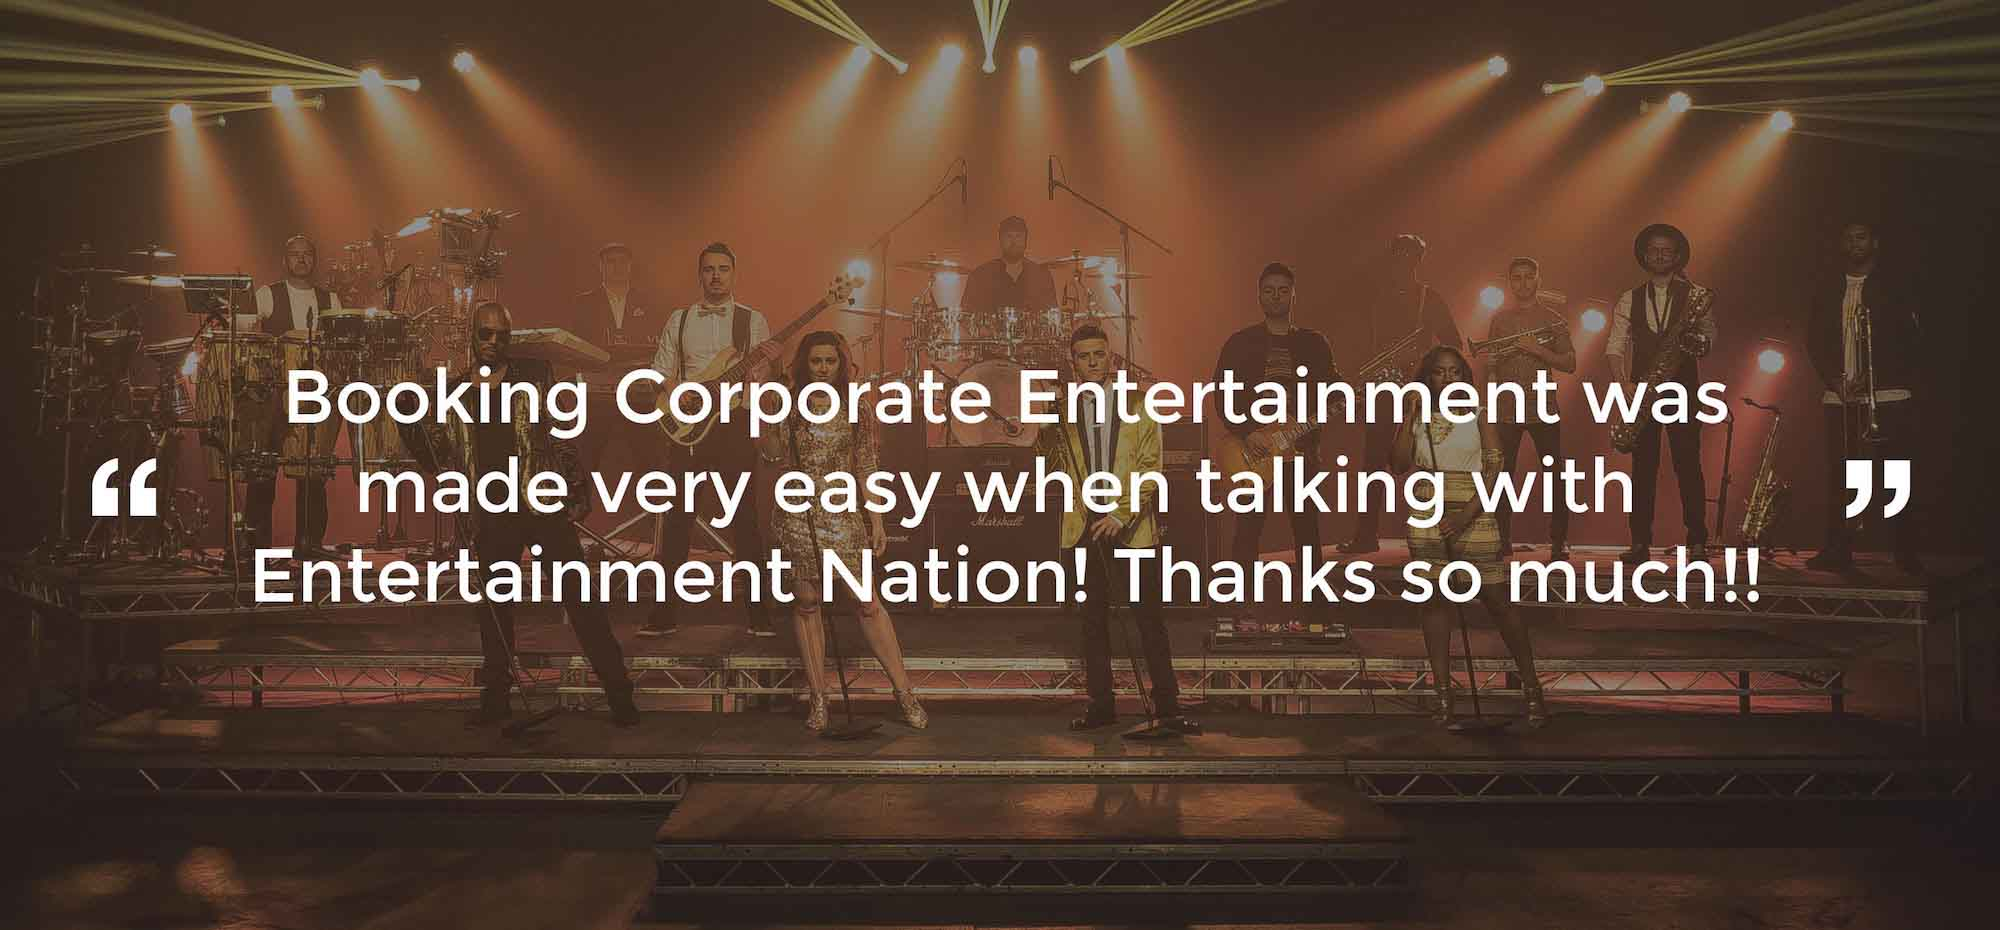 Client Review of Corporate Entertainment Flintshire